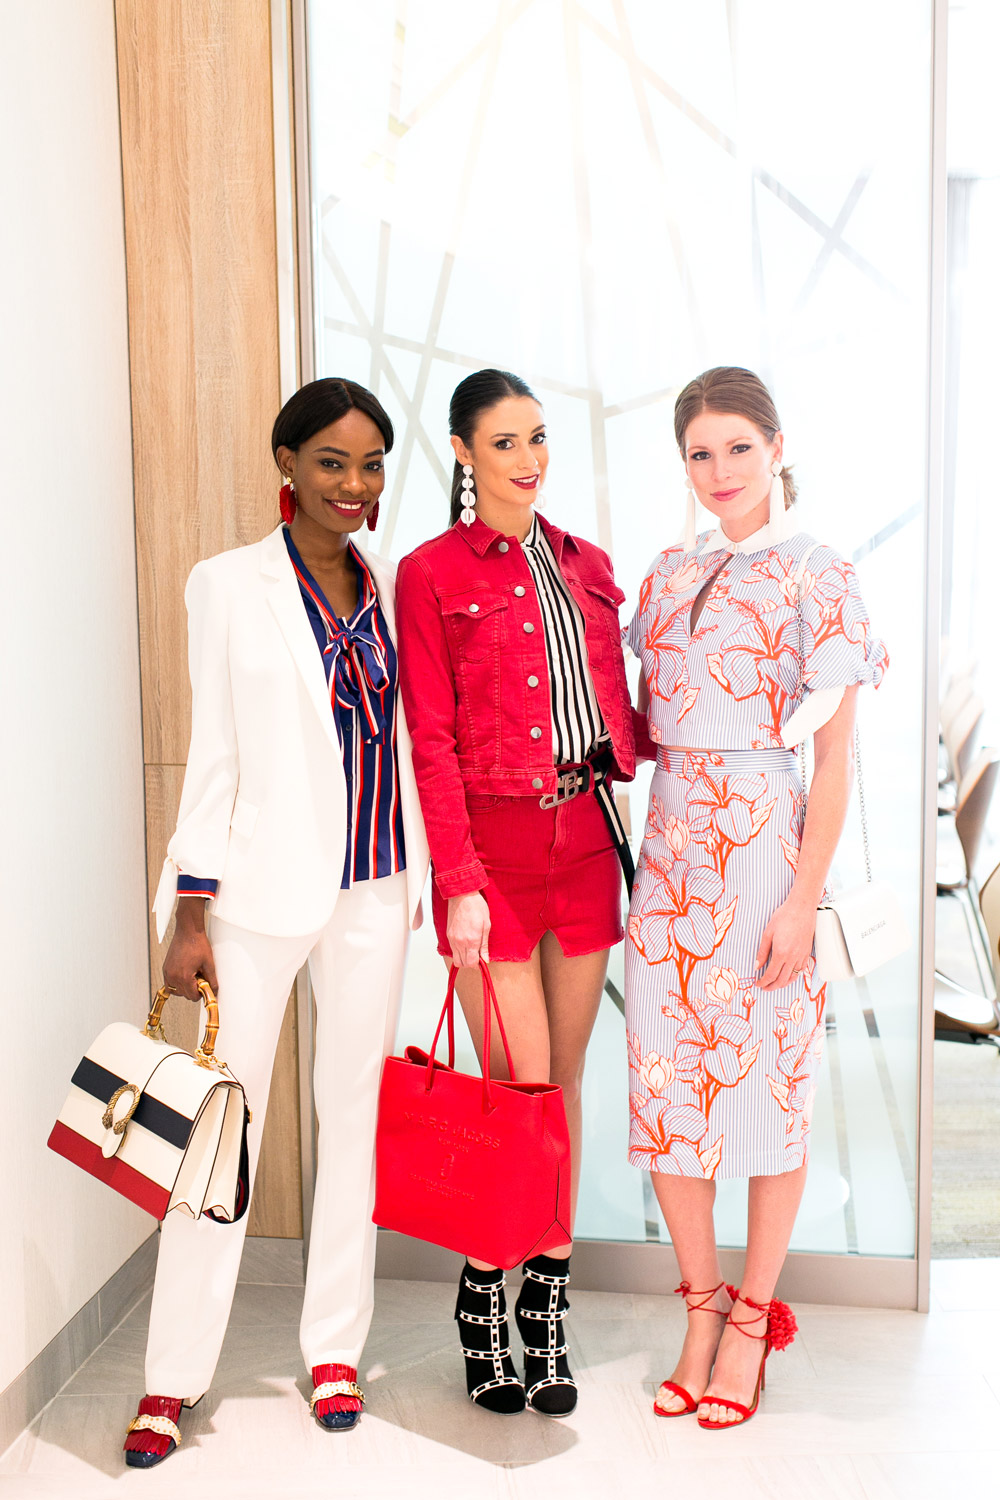 917df2bfd8 Neiman Marcus Spring Trends 2018 Media Preview STRIPES trend on models